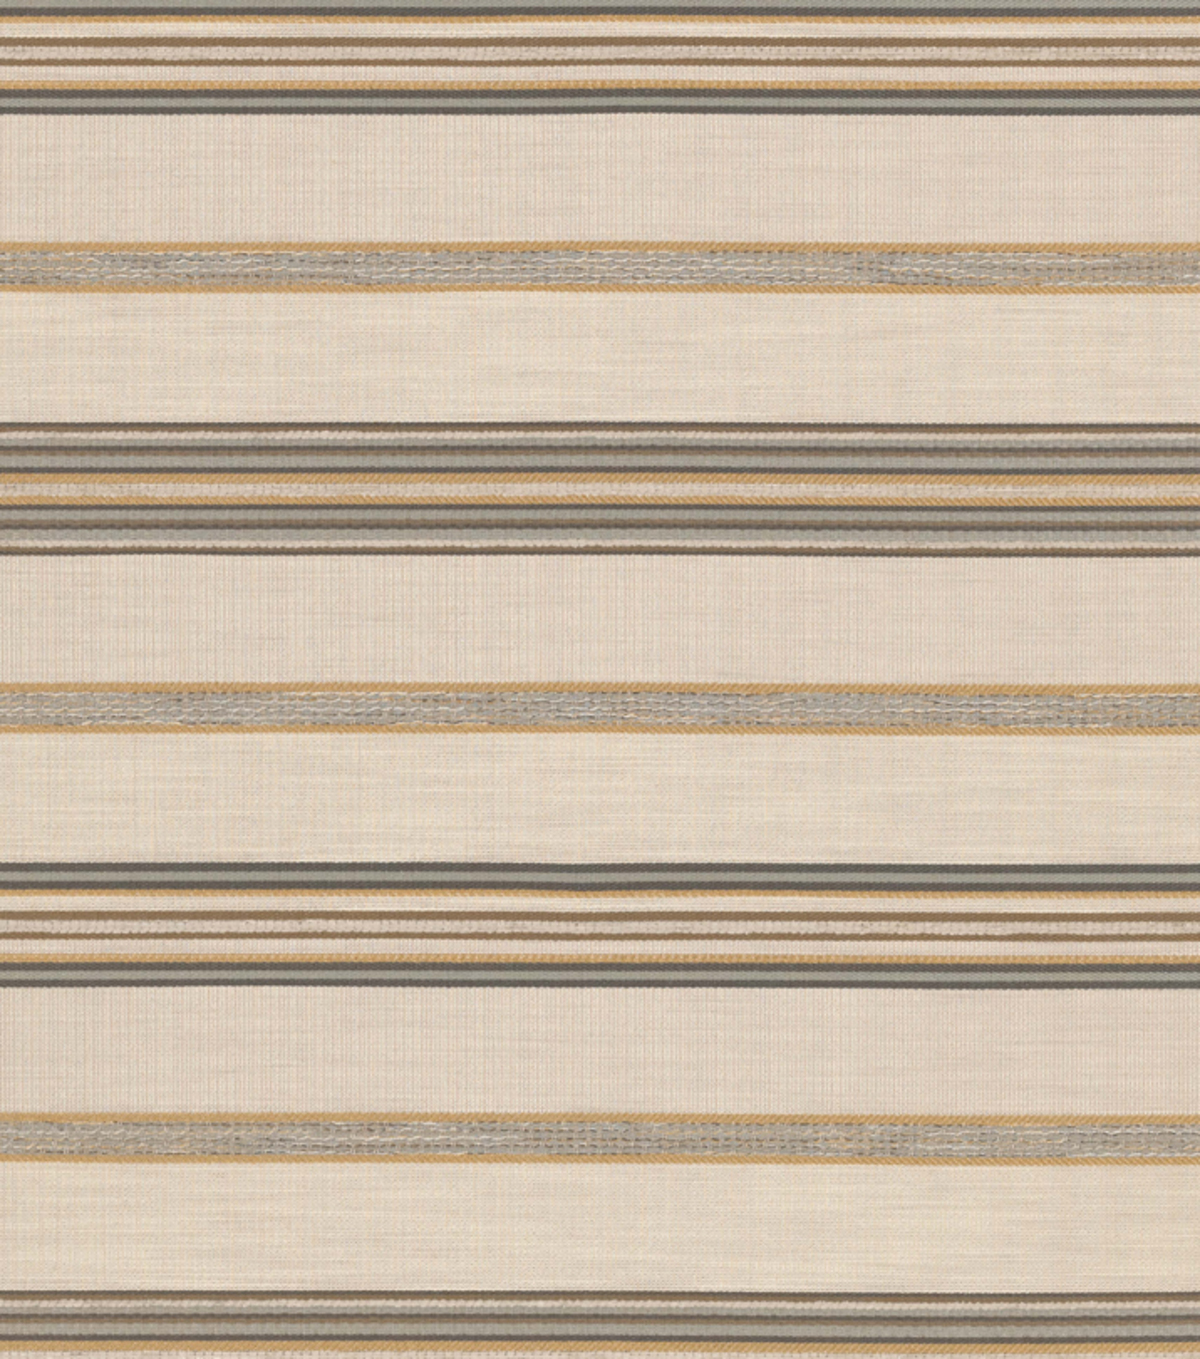 Home Decor 8\u0022x8\u0022 Fabric Swatch-Pamlico Parchment